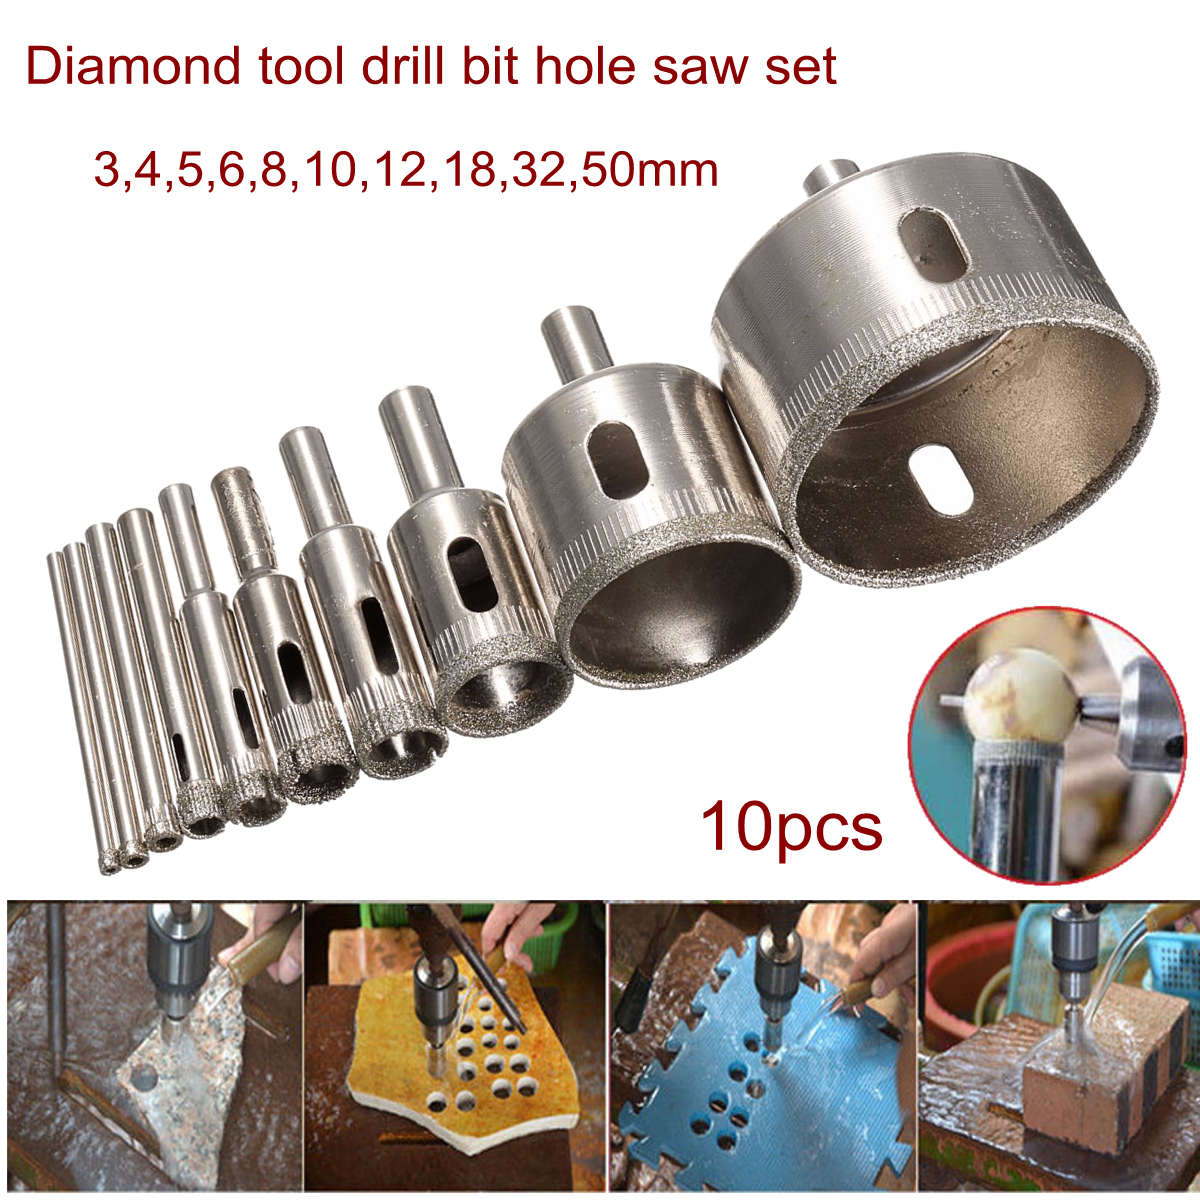 3MM-38MM DIAMOND PLATED TILE CERAMIC MARBLE GLASS CUTTER DRILL BITS HOLE SAW